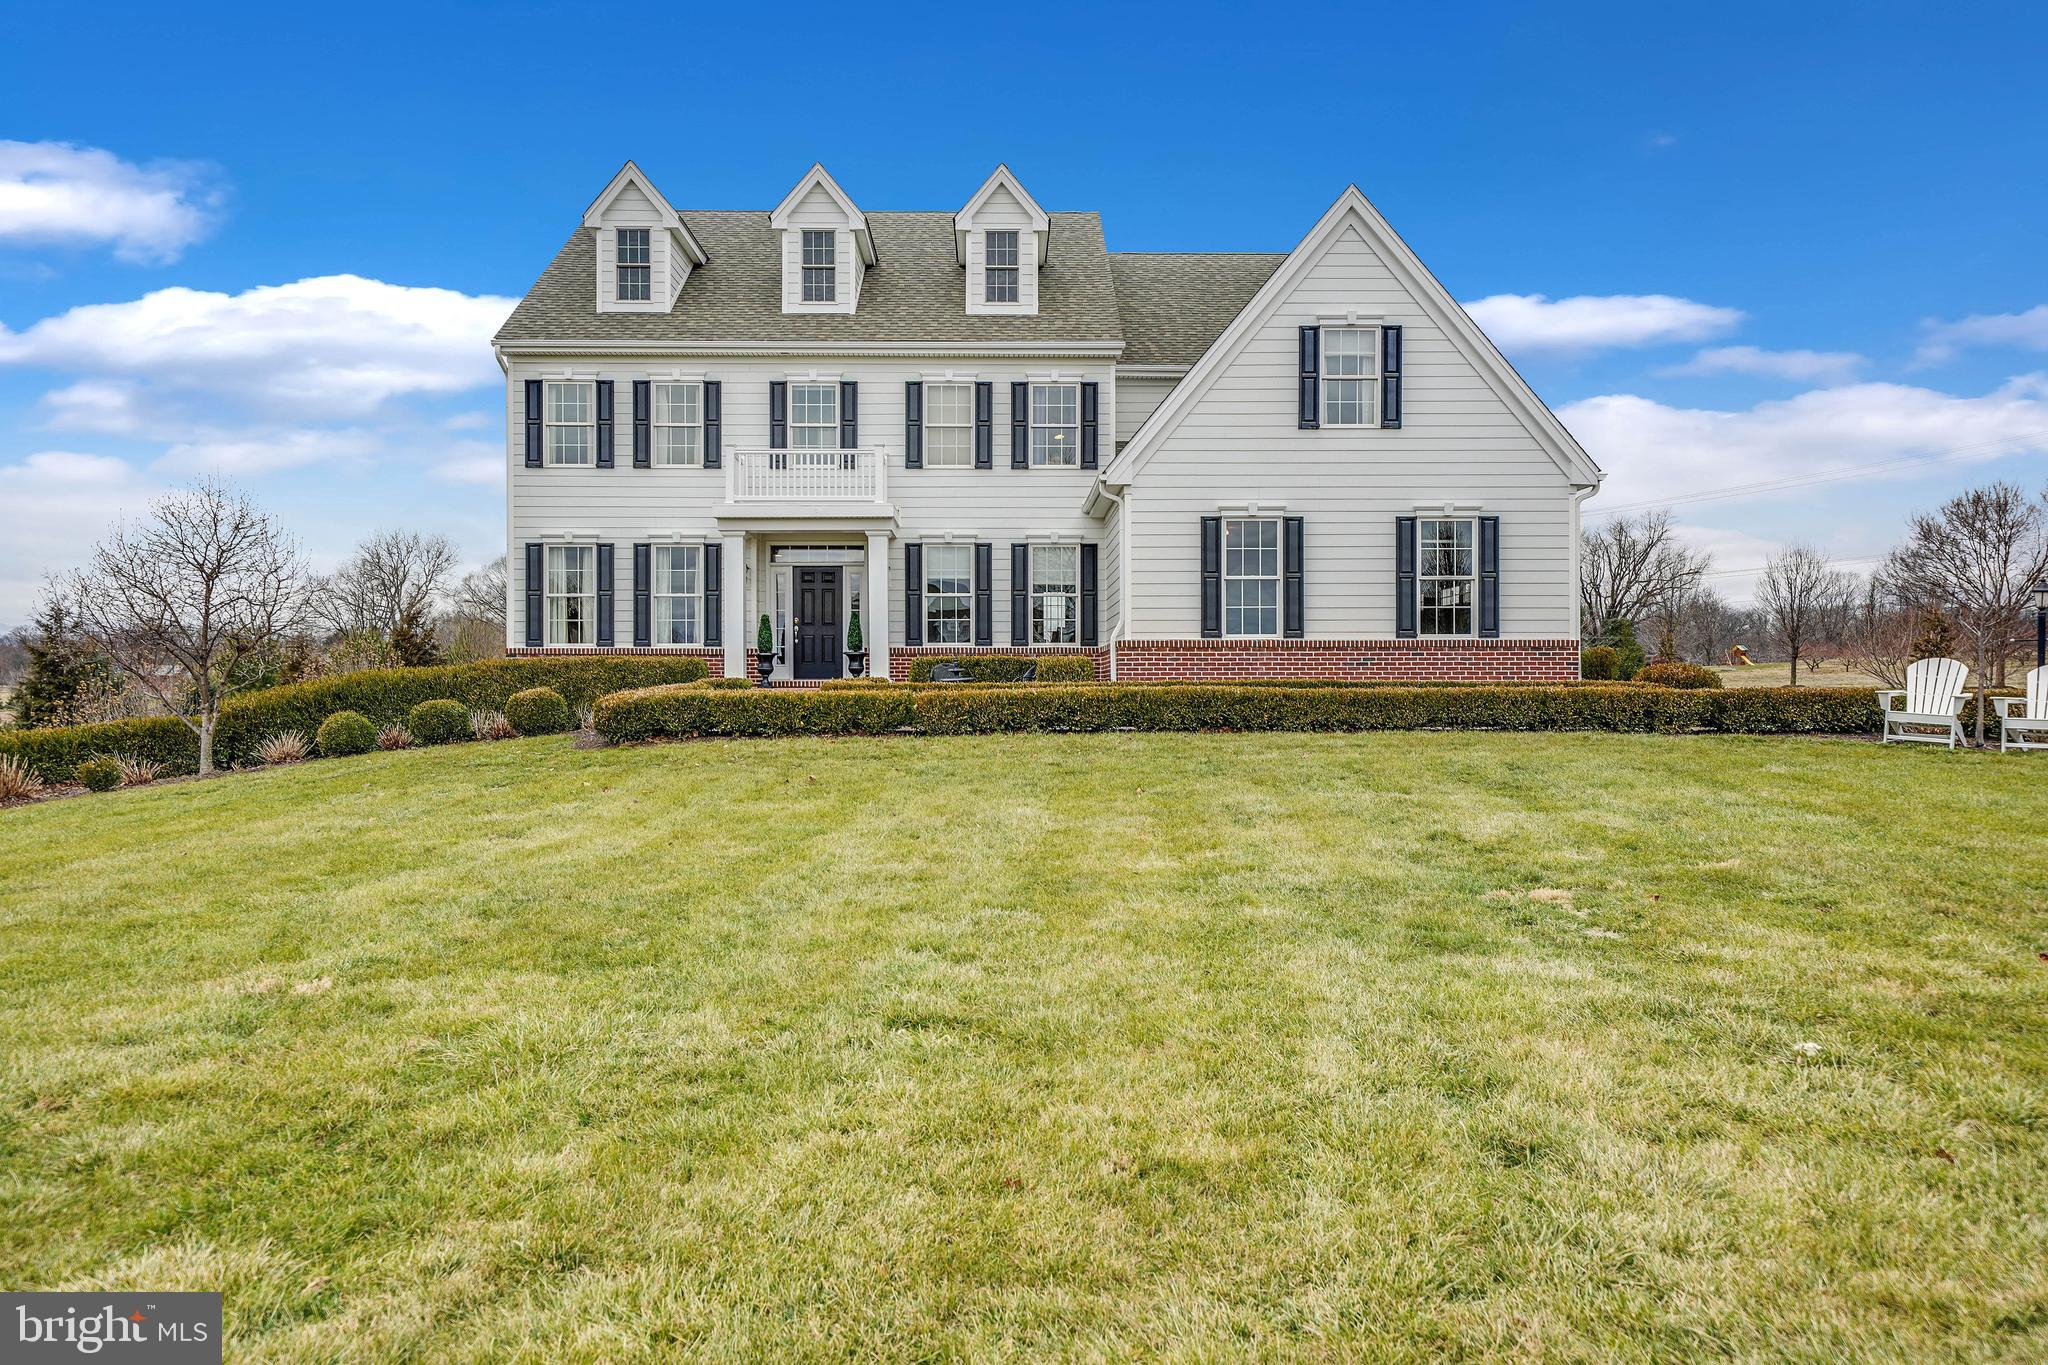 100 GALVIN CIRCLE, KENNETT SQUARE, PA 19348